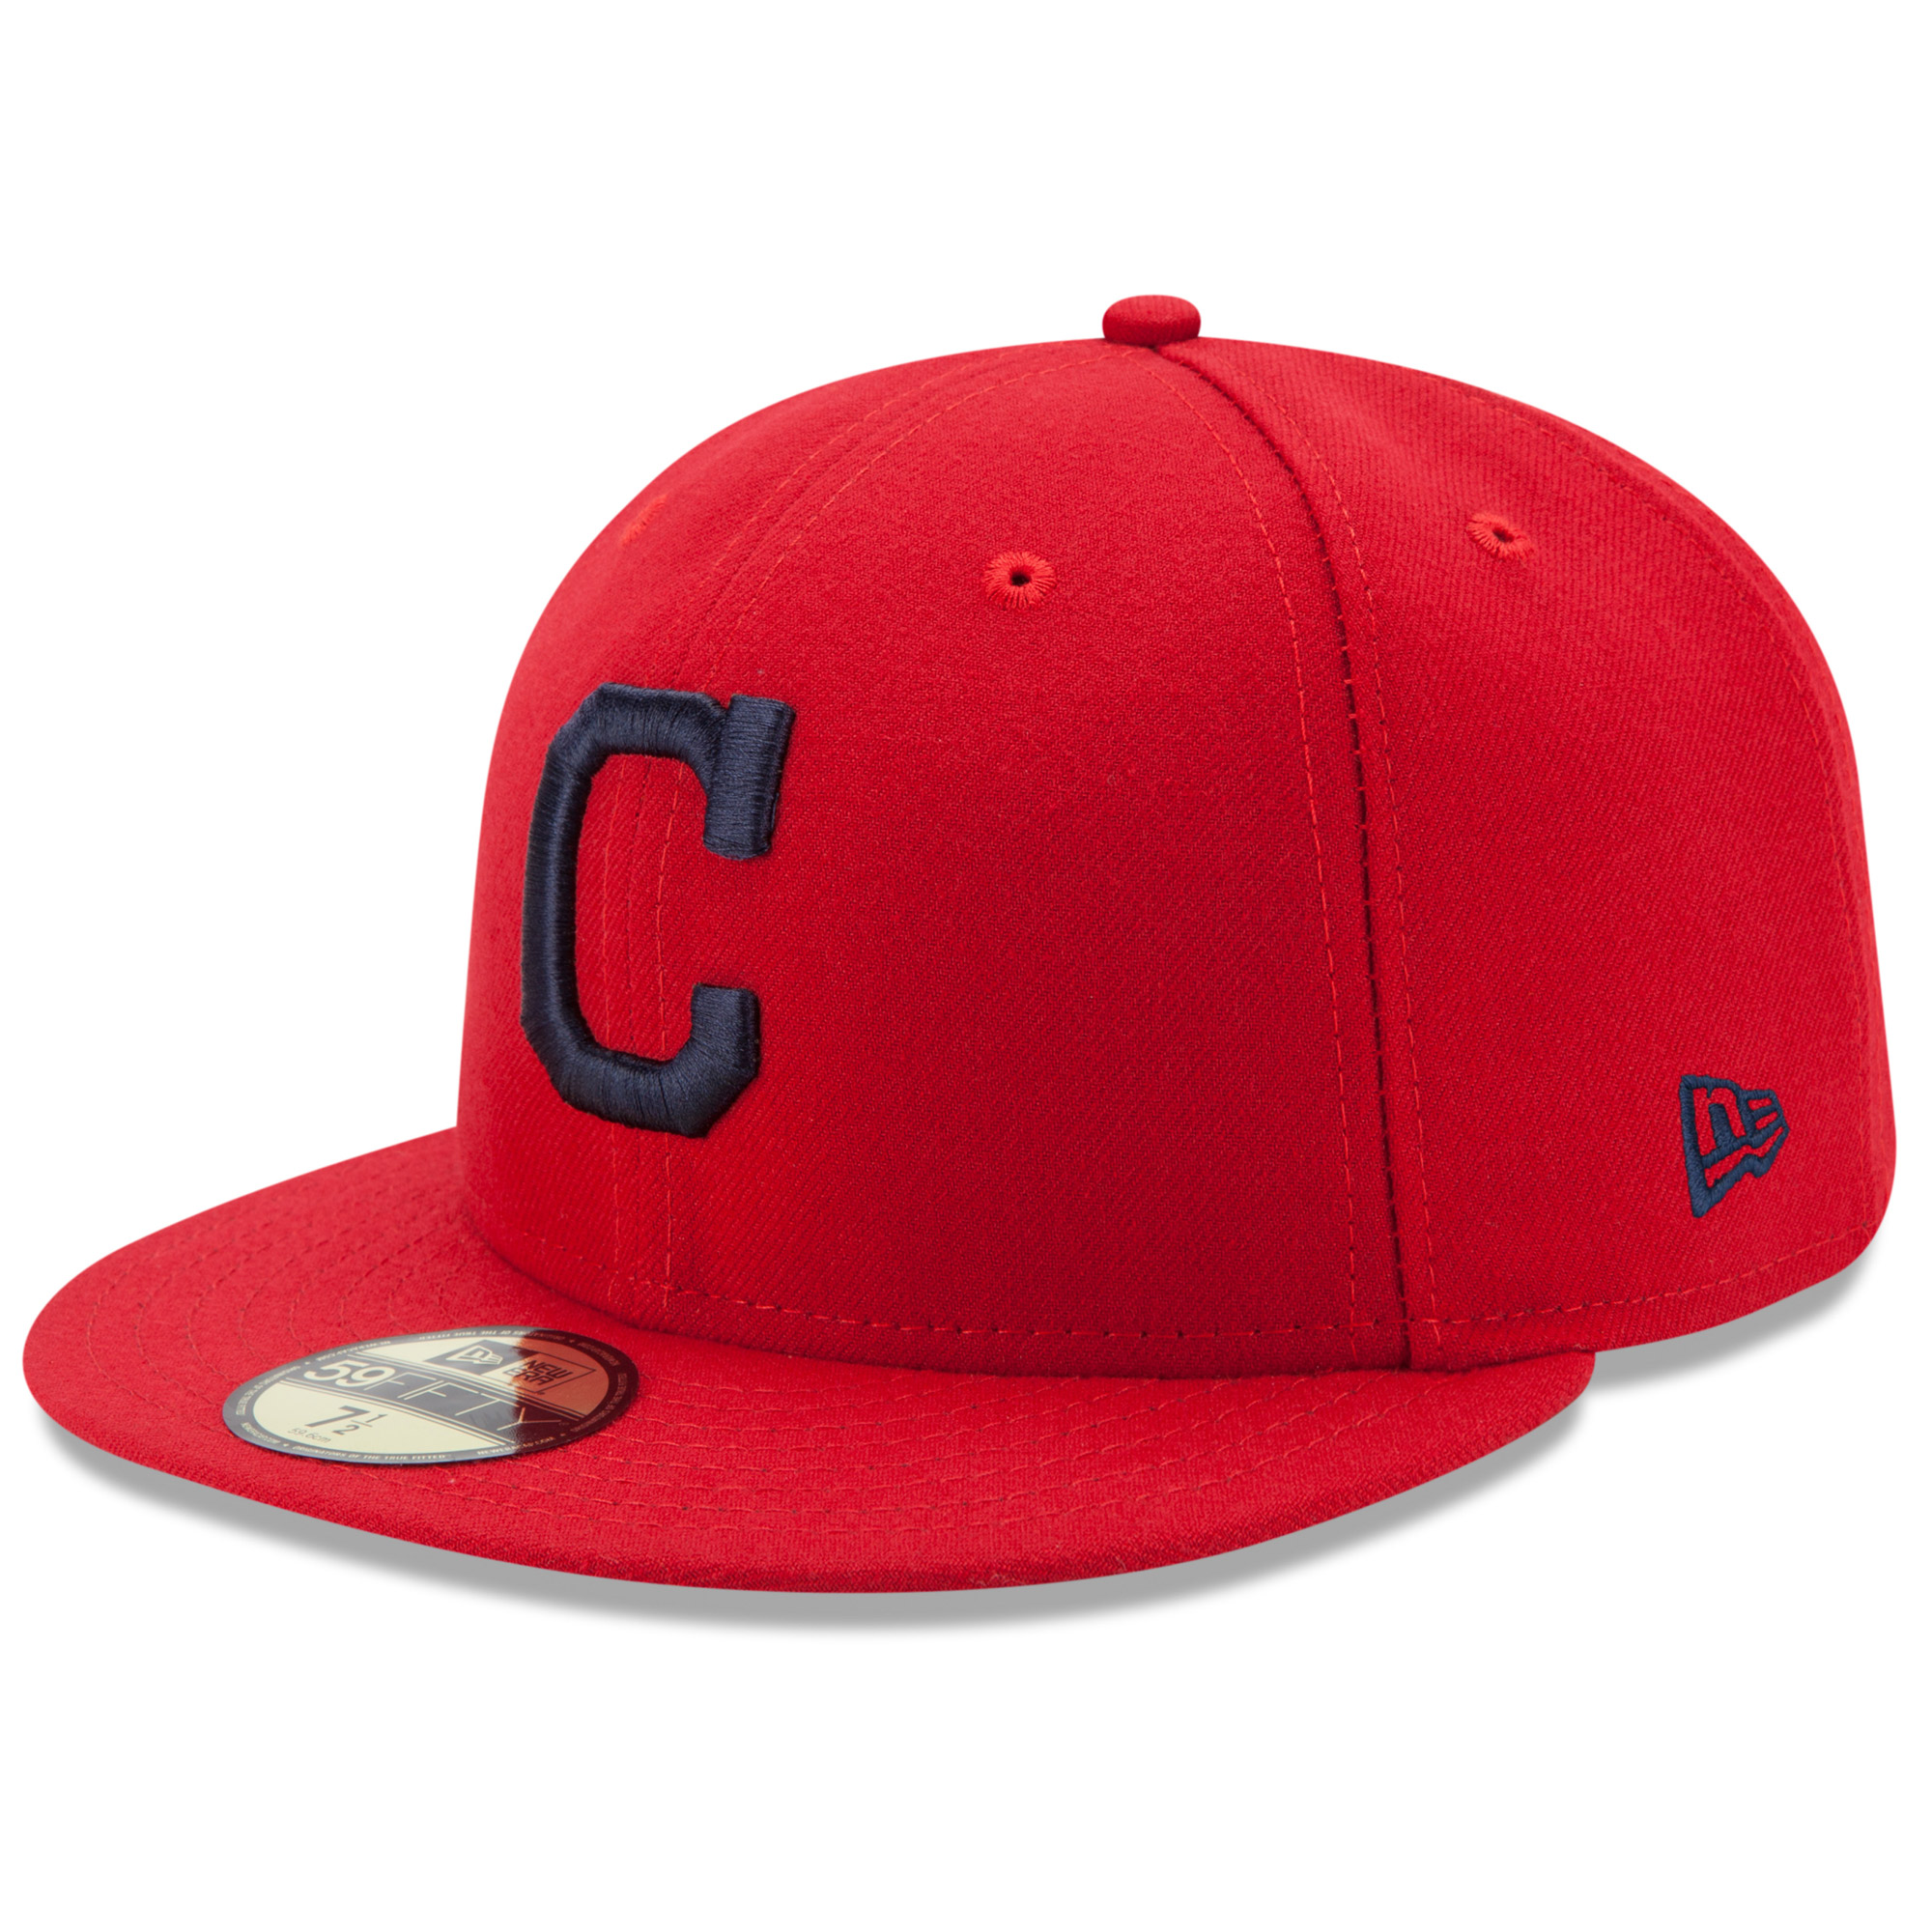 Cleveland Indians New Era Alternate Authentic Collection On Field 59FIFTY Fitted Hat - Red